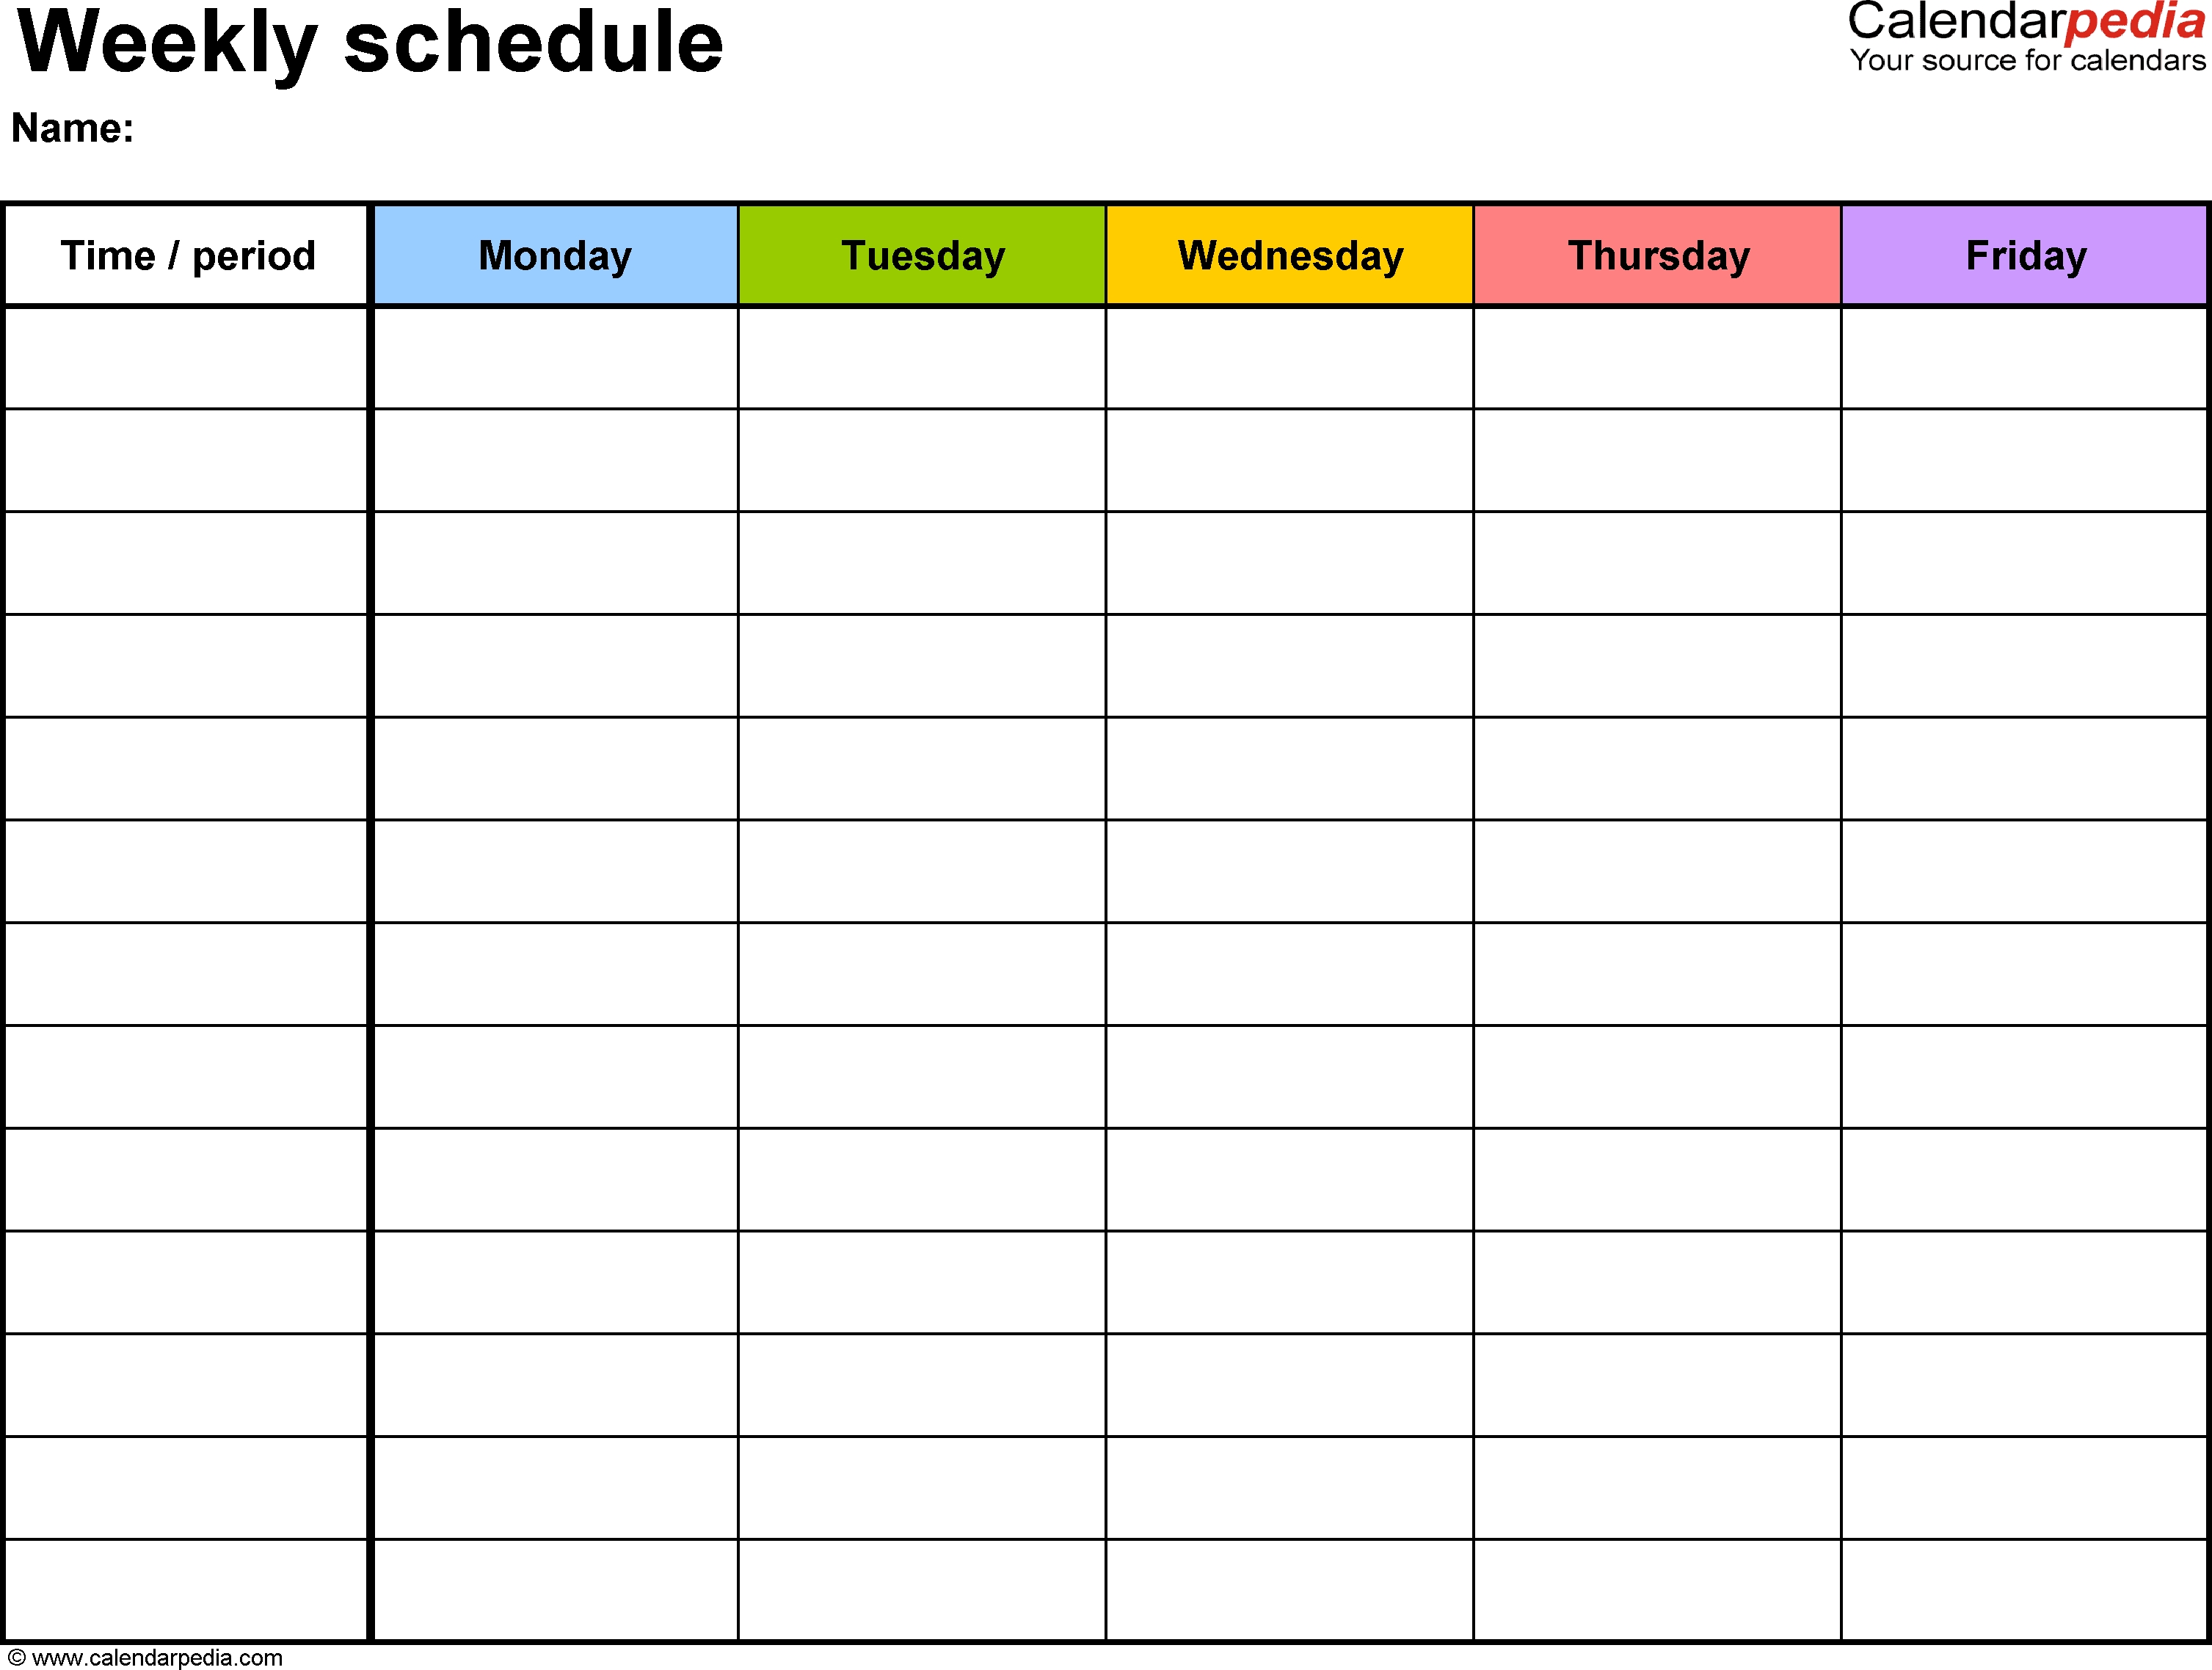 Free Weekly Schedule Templates For Pdf - 18 Templates with regard to Printable Appointment Calendars Monday Through Friday